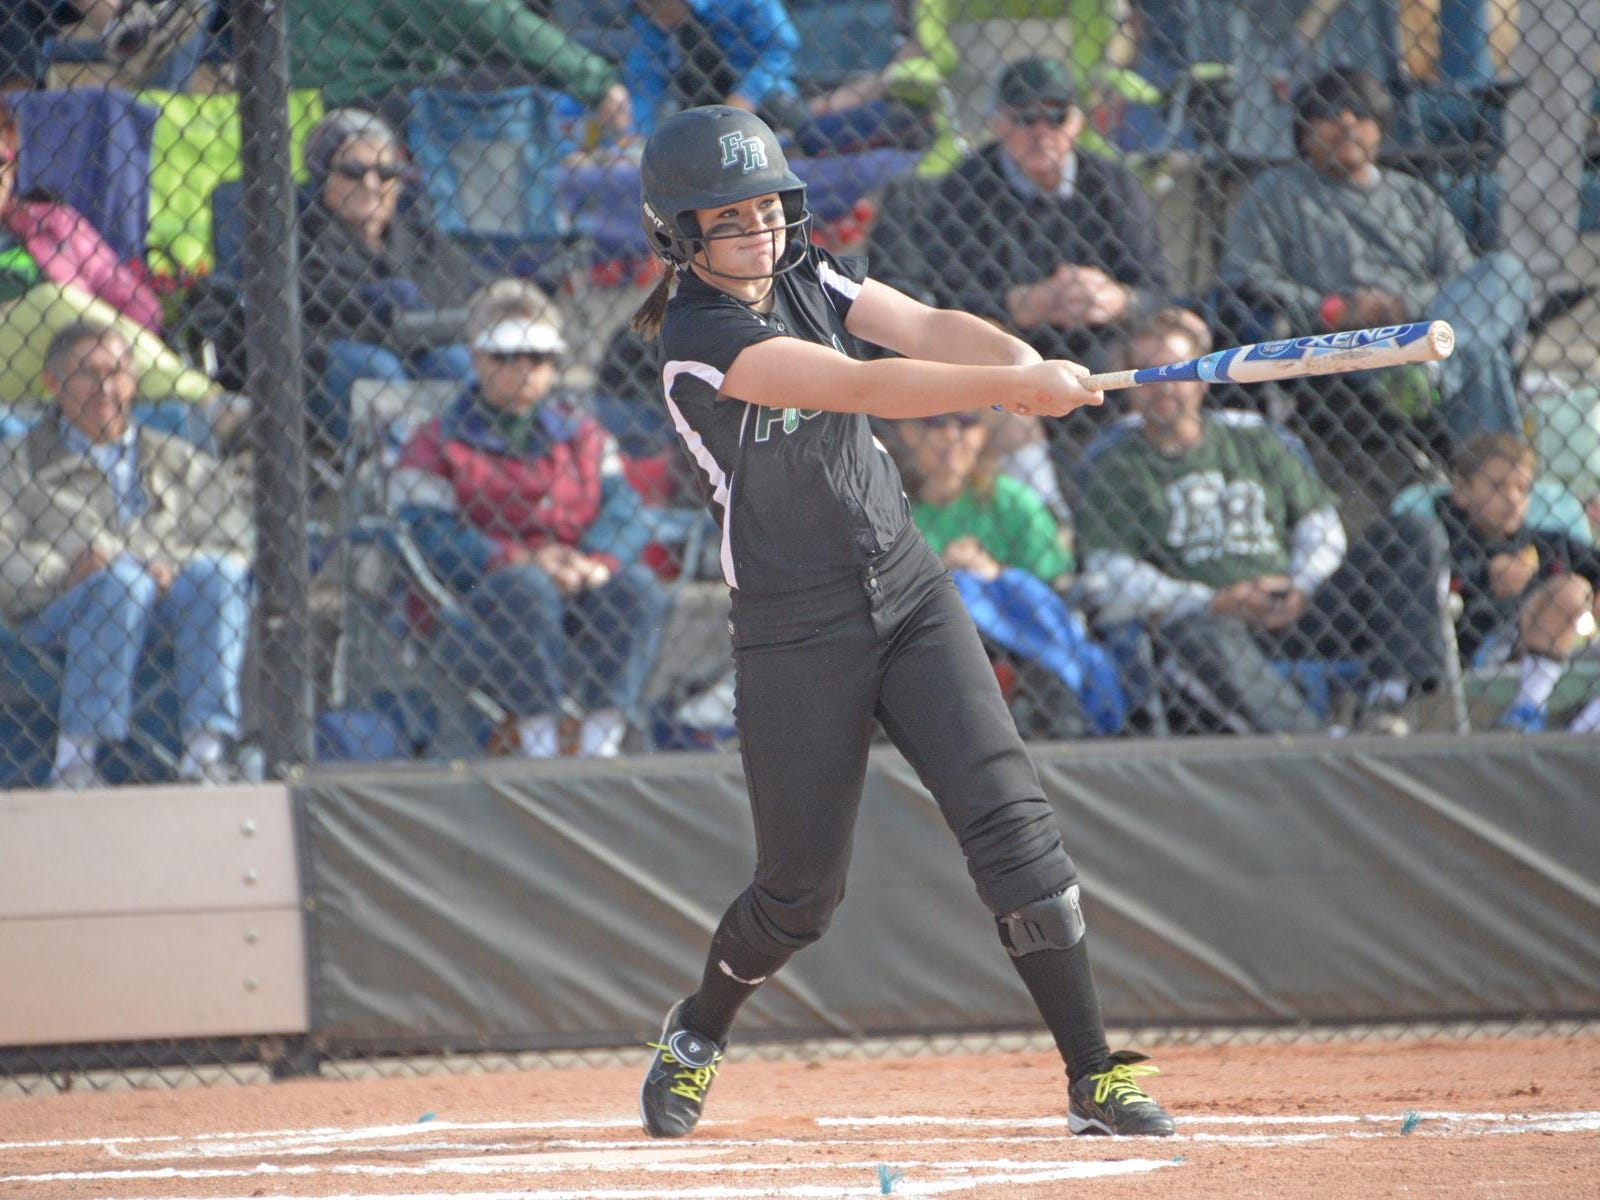 Fossil Ridge's Haley Donaldson leads all area softball players in batting average in the 2015 season.